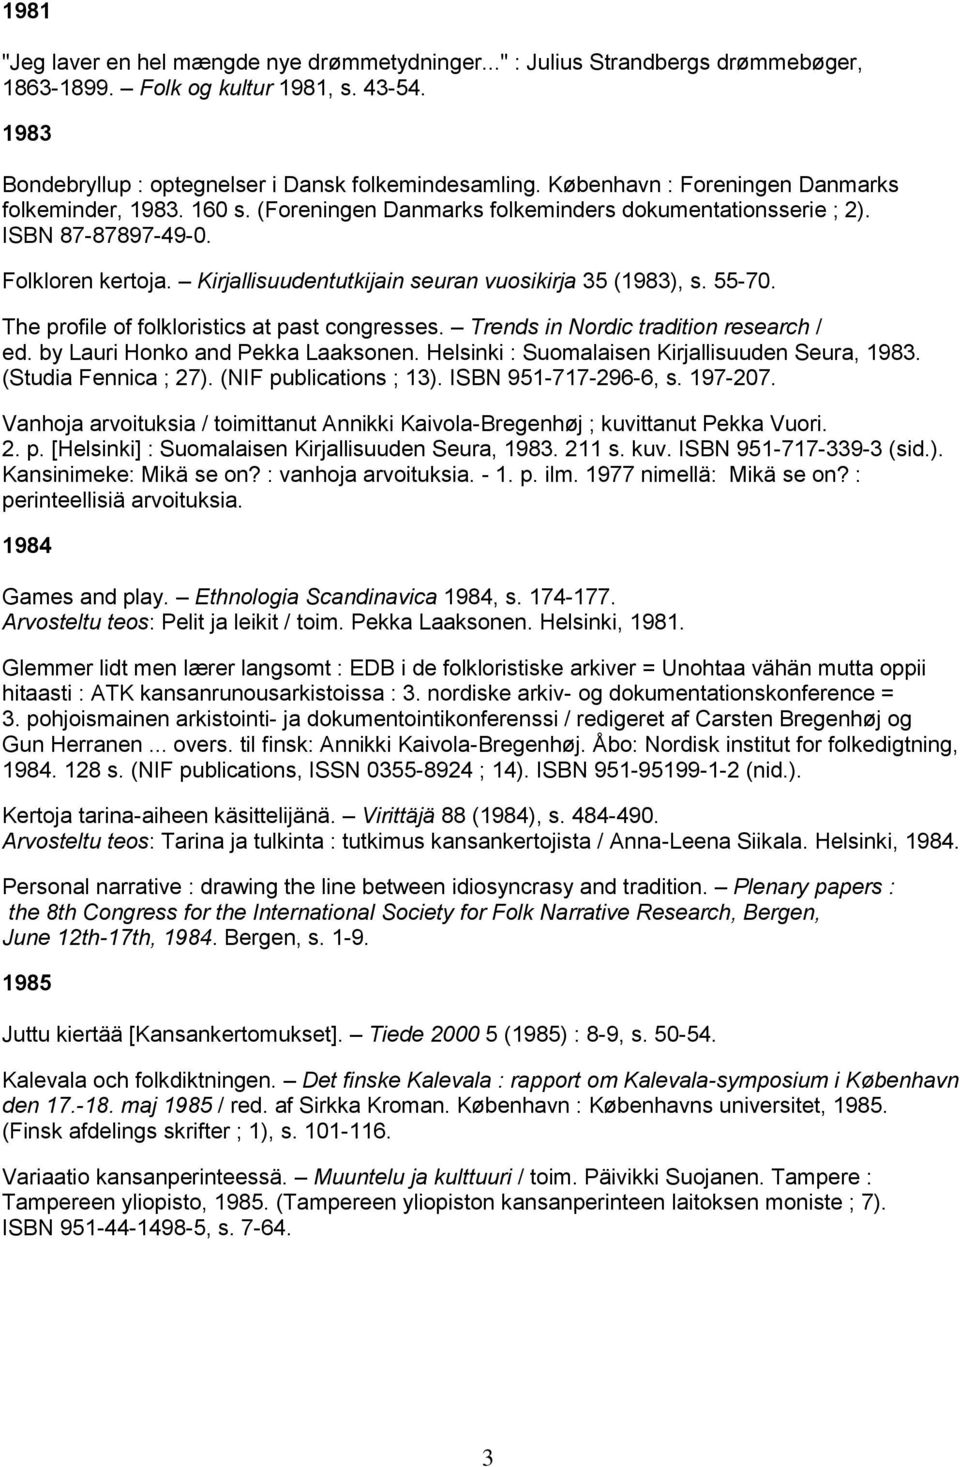 Kirjallisuudentutkijain seuran vuosikirja 35 (1983), s. 55-70. The profile of folkloristics at past congresses. Trends in Nordic tradition research / ed. by Lauri Honko and Pekka Laaksonen.